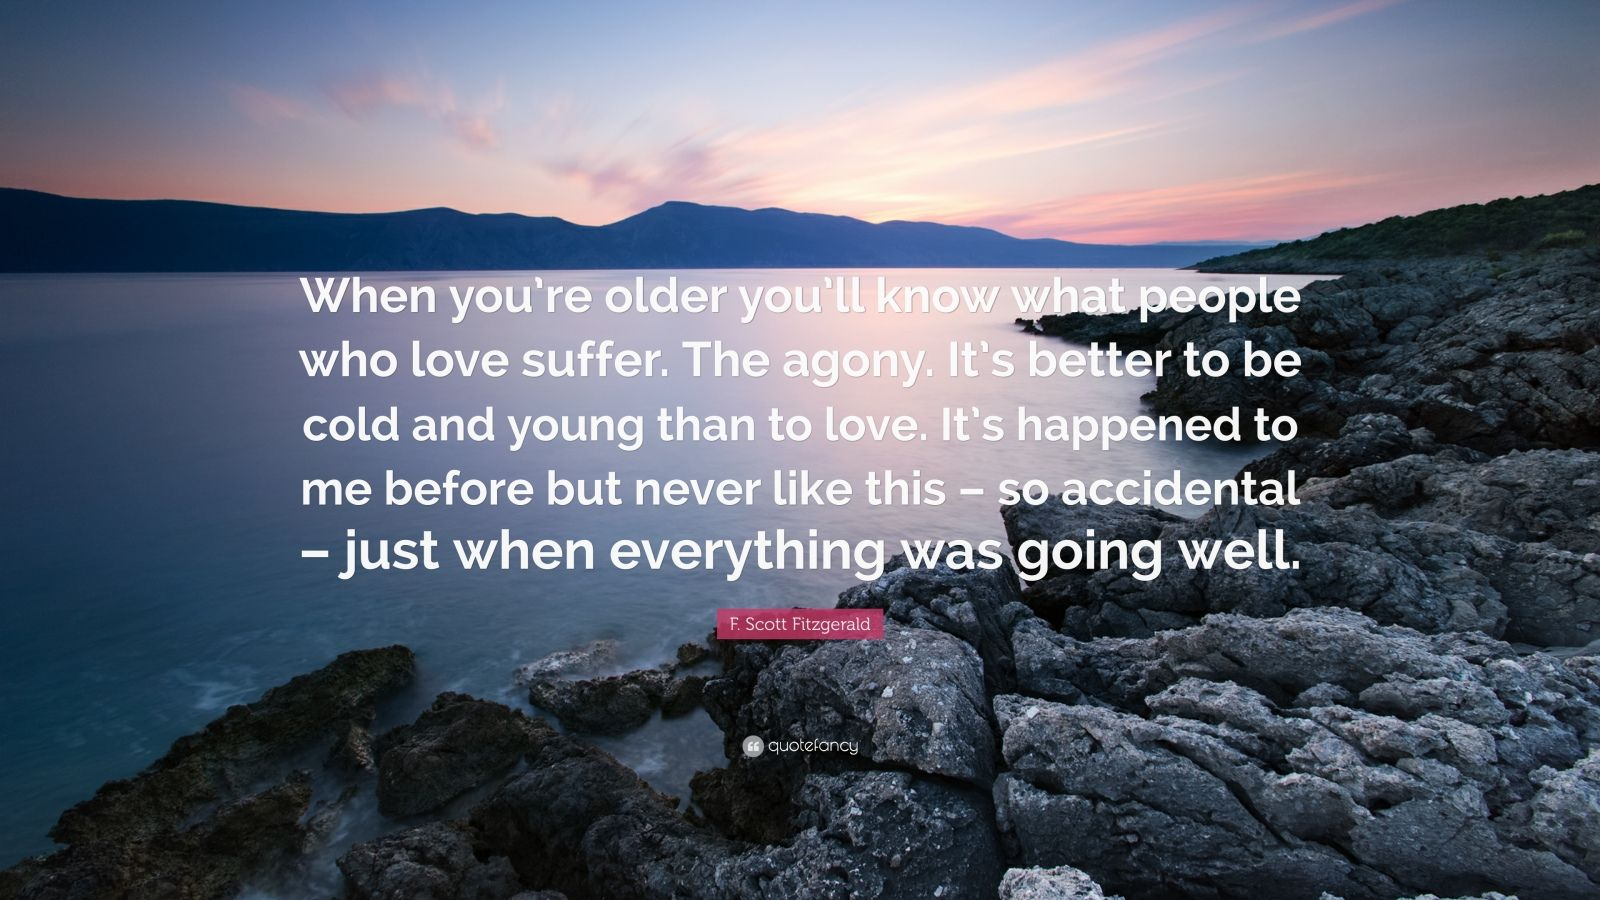 """F. Scott Fitzgerald Quote: """"When you're older you'll know what people who love suffer. The agony. It's better to be cold and young than to love. It's happened to me before but never like this – so accidental – just when everything was going well."""""""